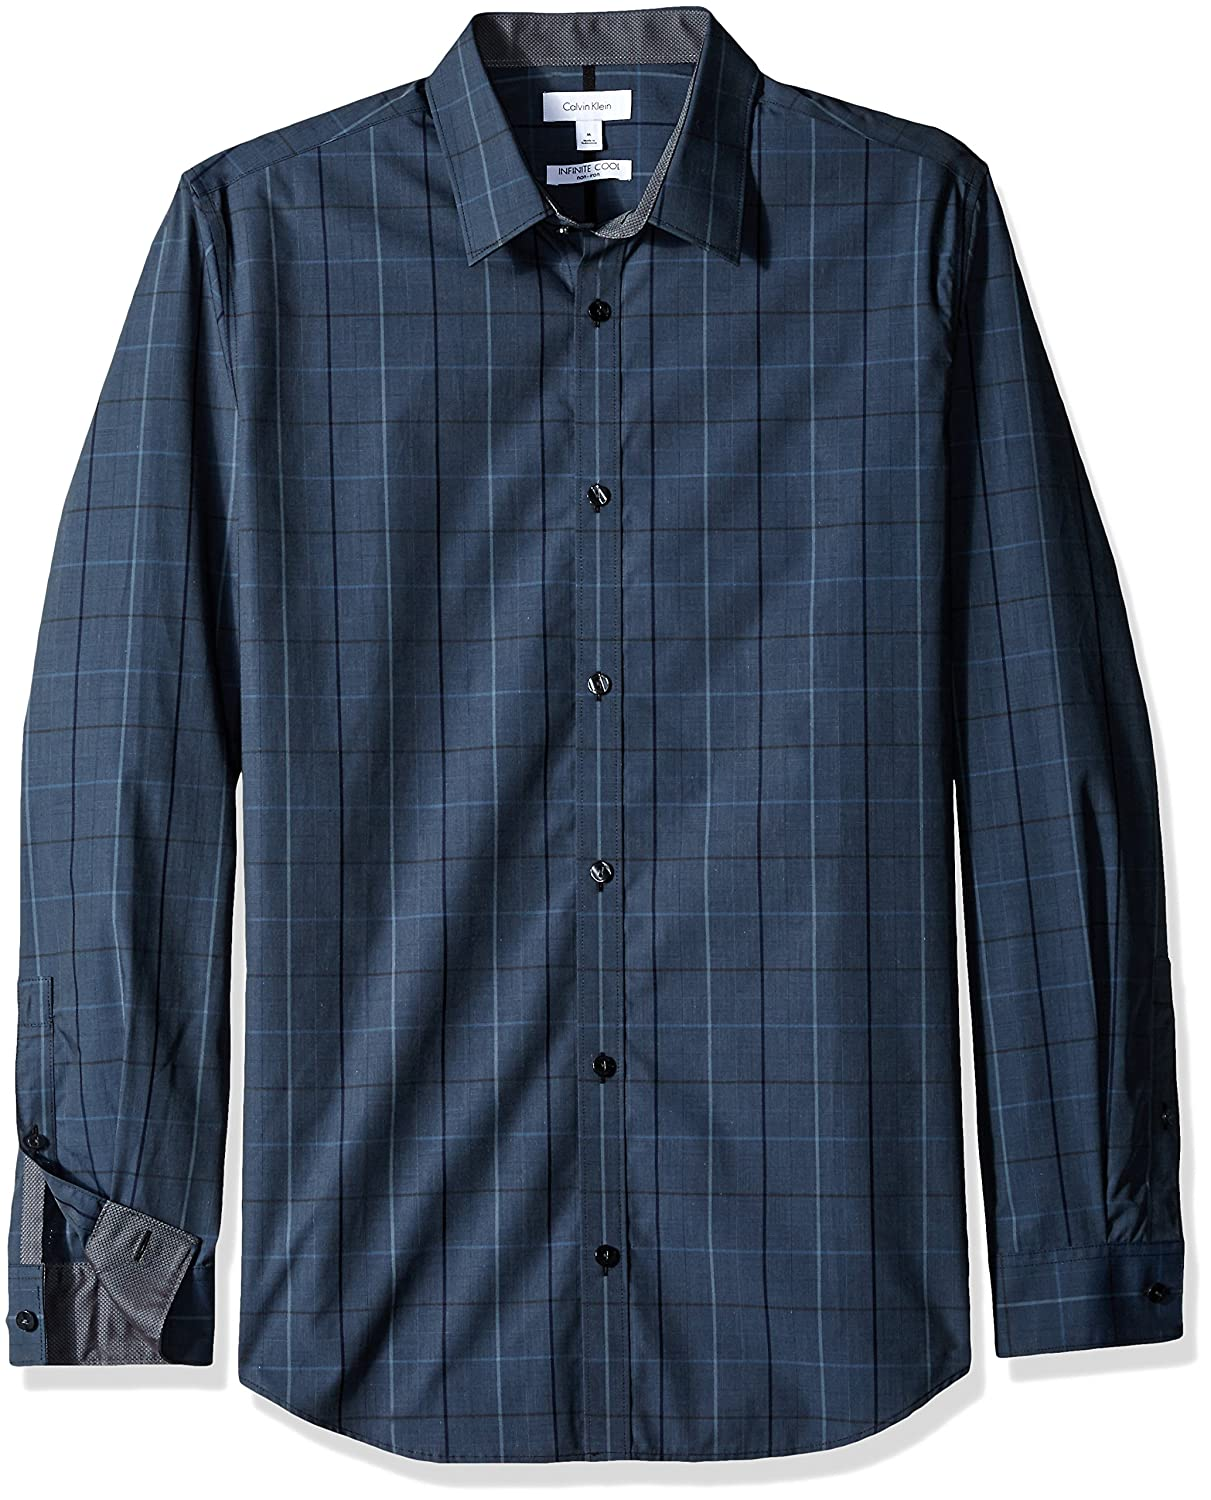 Calvin Klein Men's Window Plaid Infinite Cool Long Sleeve Button Down Shirt Black 401W118